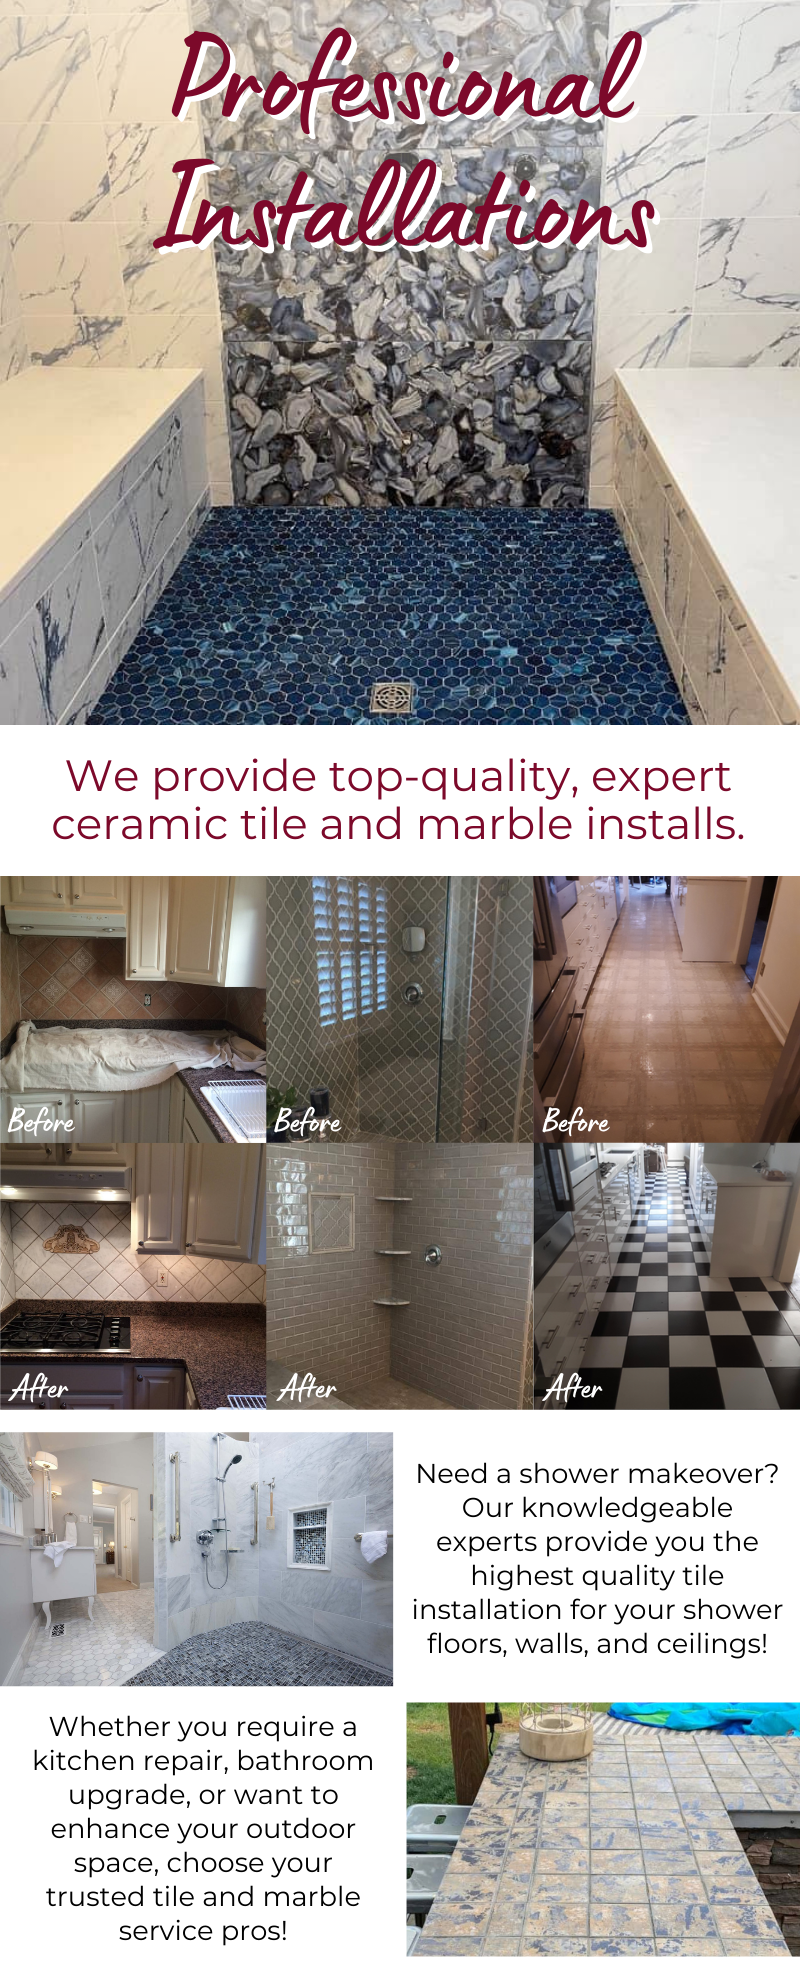 Professional Tile Installations! 13